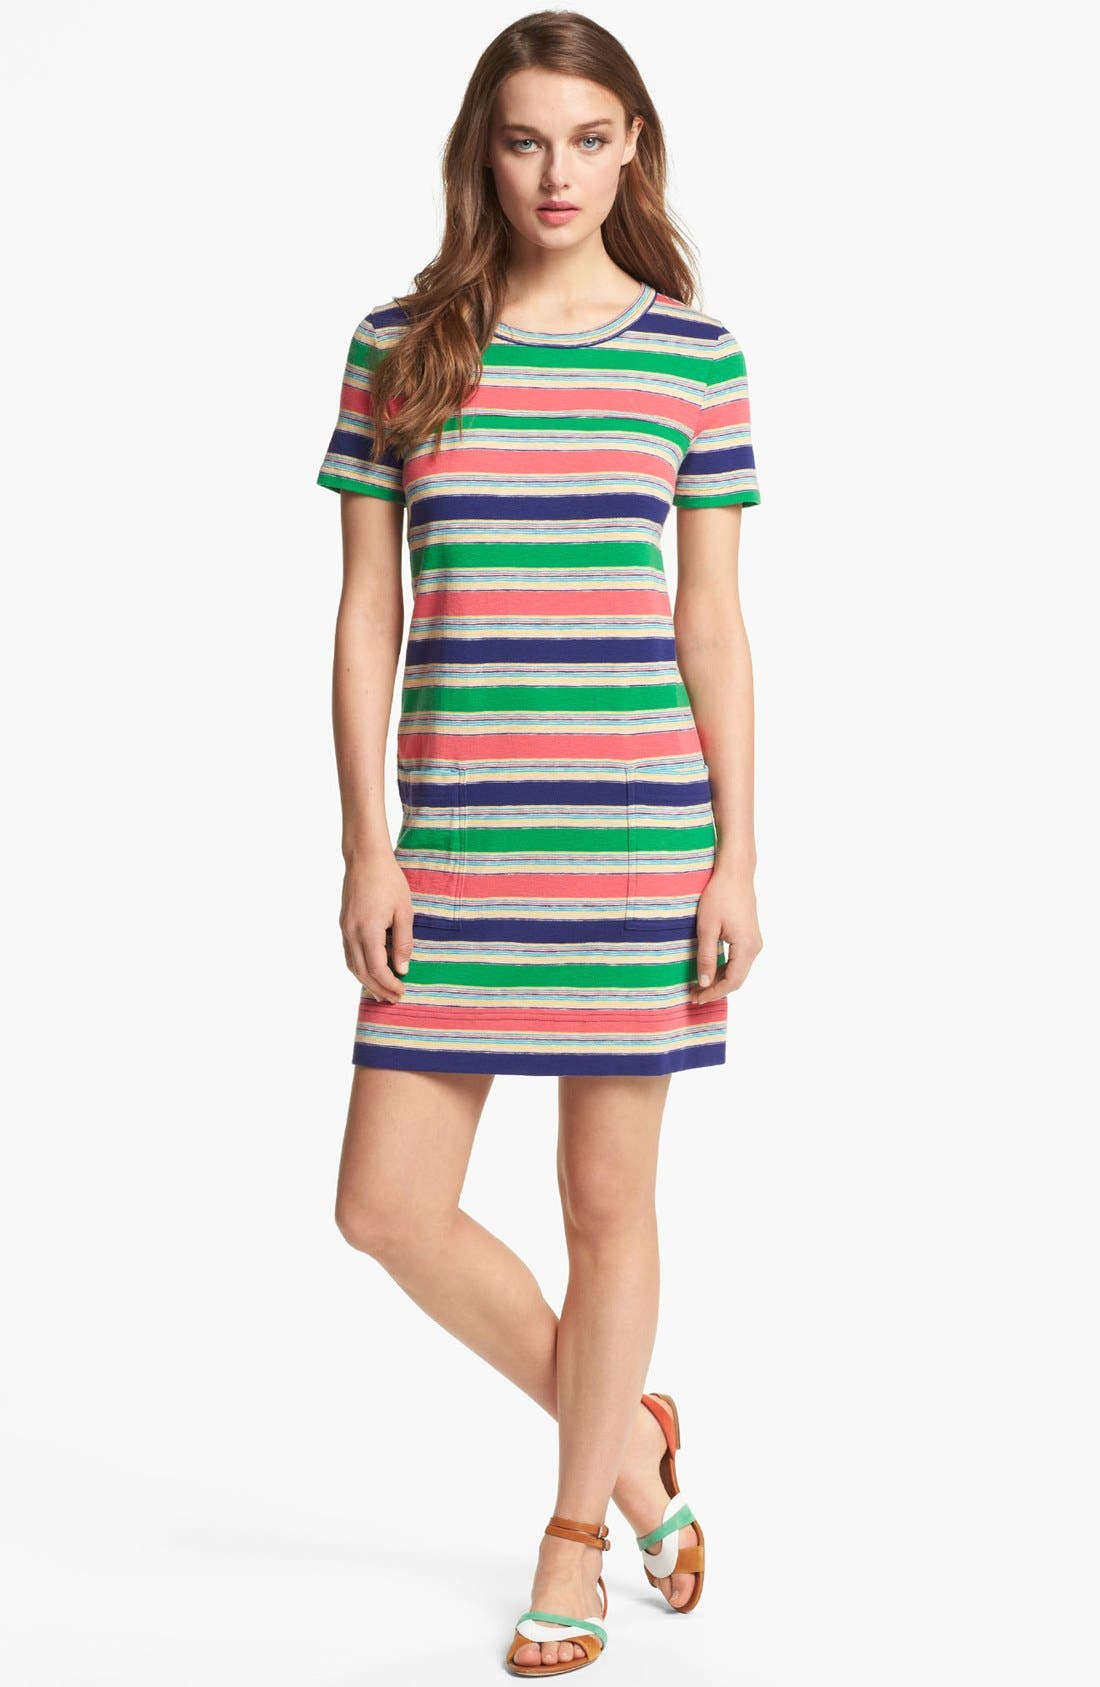 Alternate Image 1 Selected - MARC BY MARC JACOBS 'Mai Tai' Cotton Shift Dress